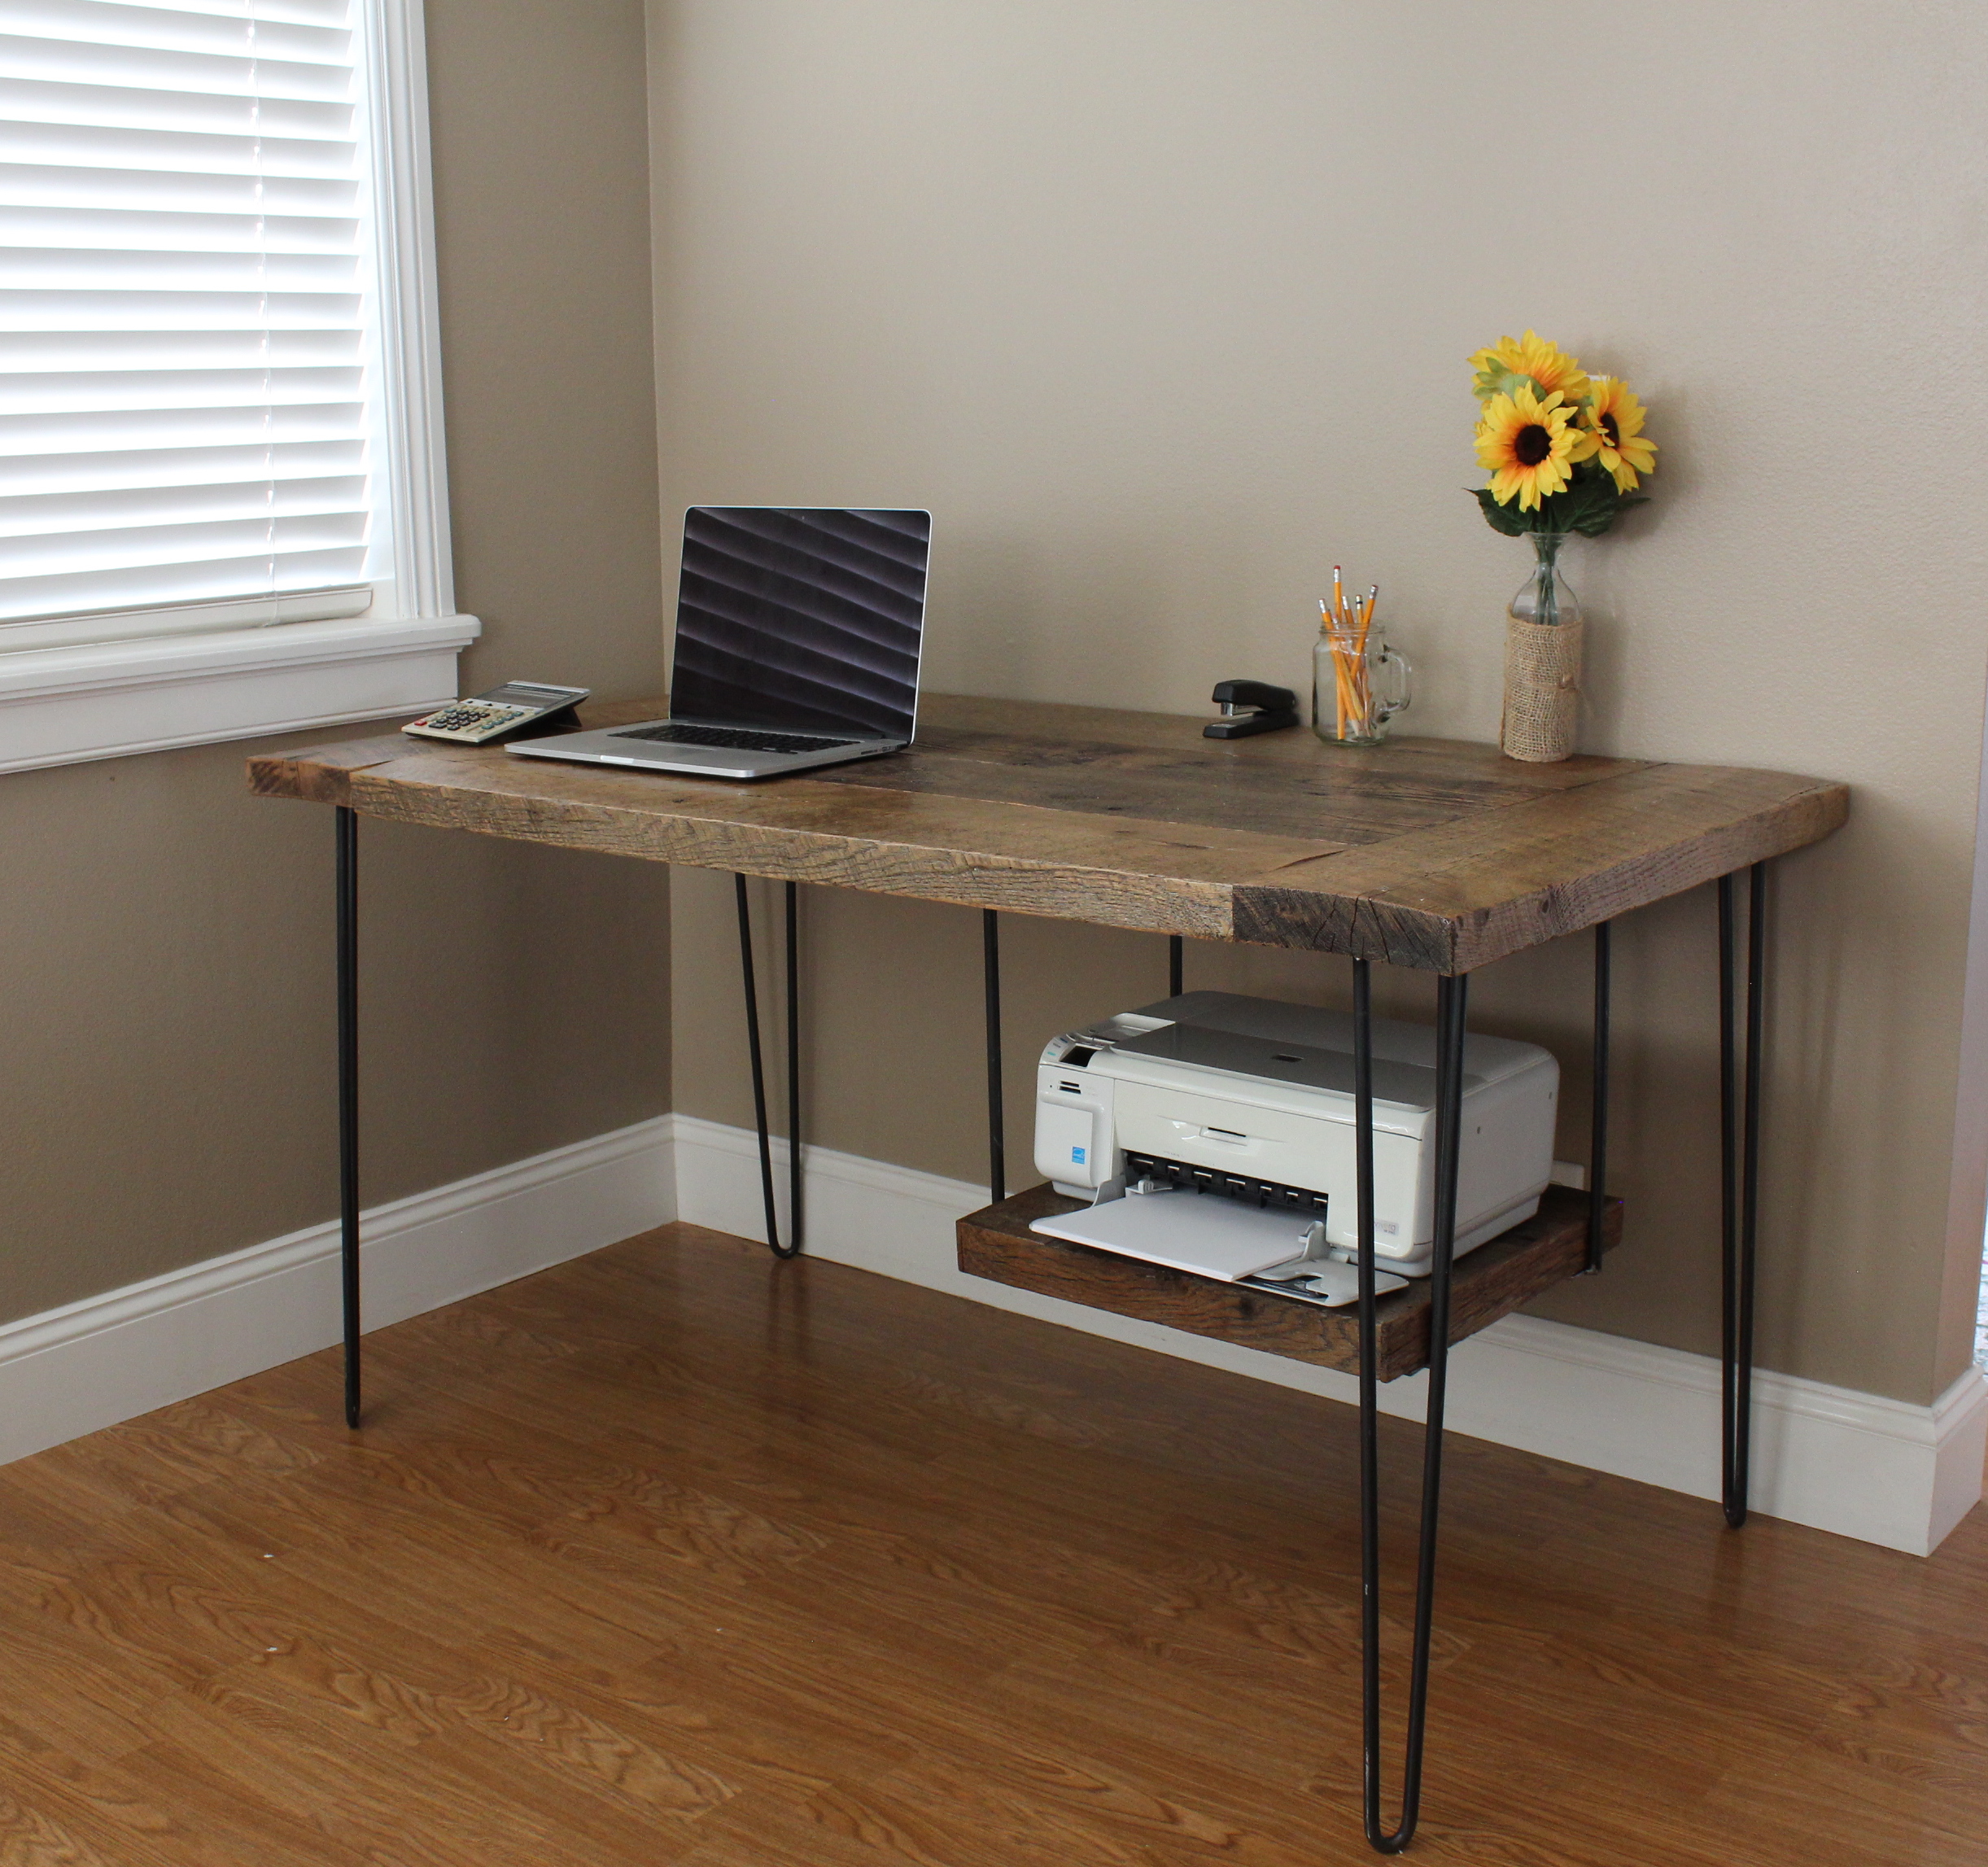 Ana White Reclaimed Modern Desk Diy Projects